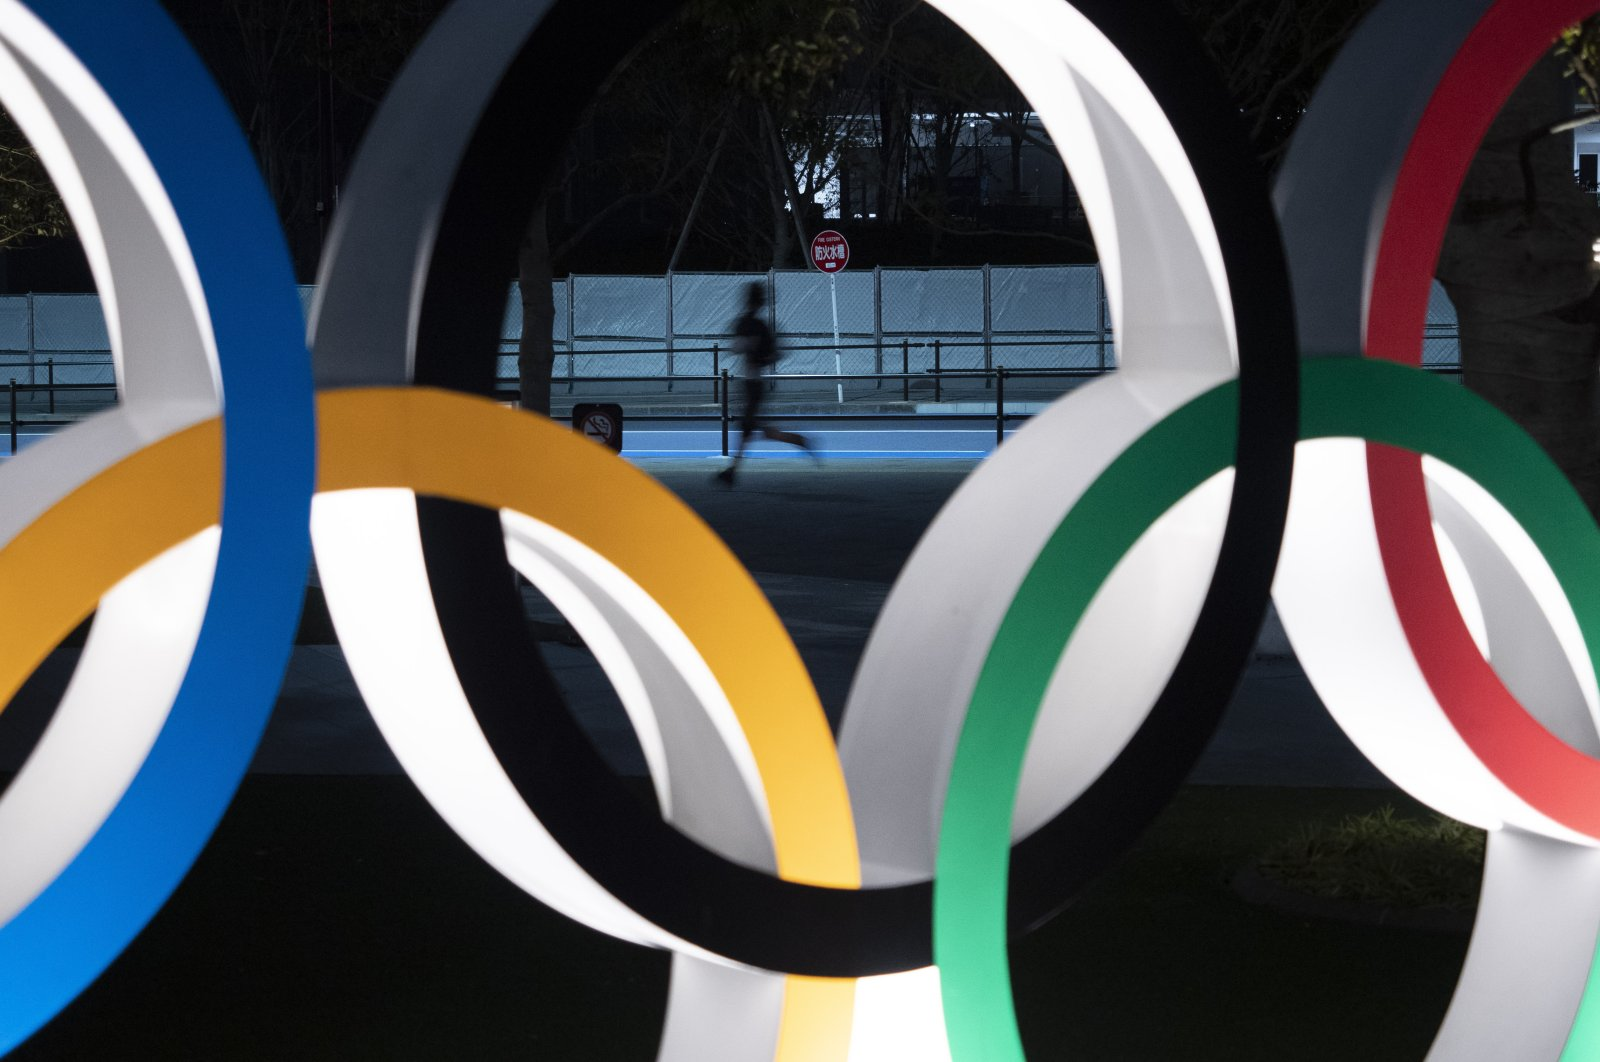 A man jogs past the Olympic rings in Tokyo, March 30, 2020. (AP Photo)